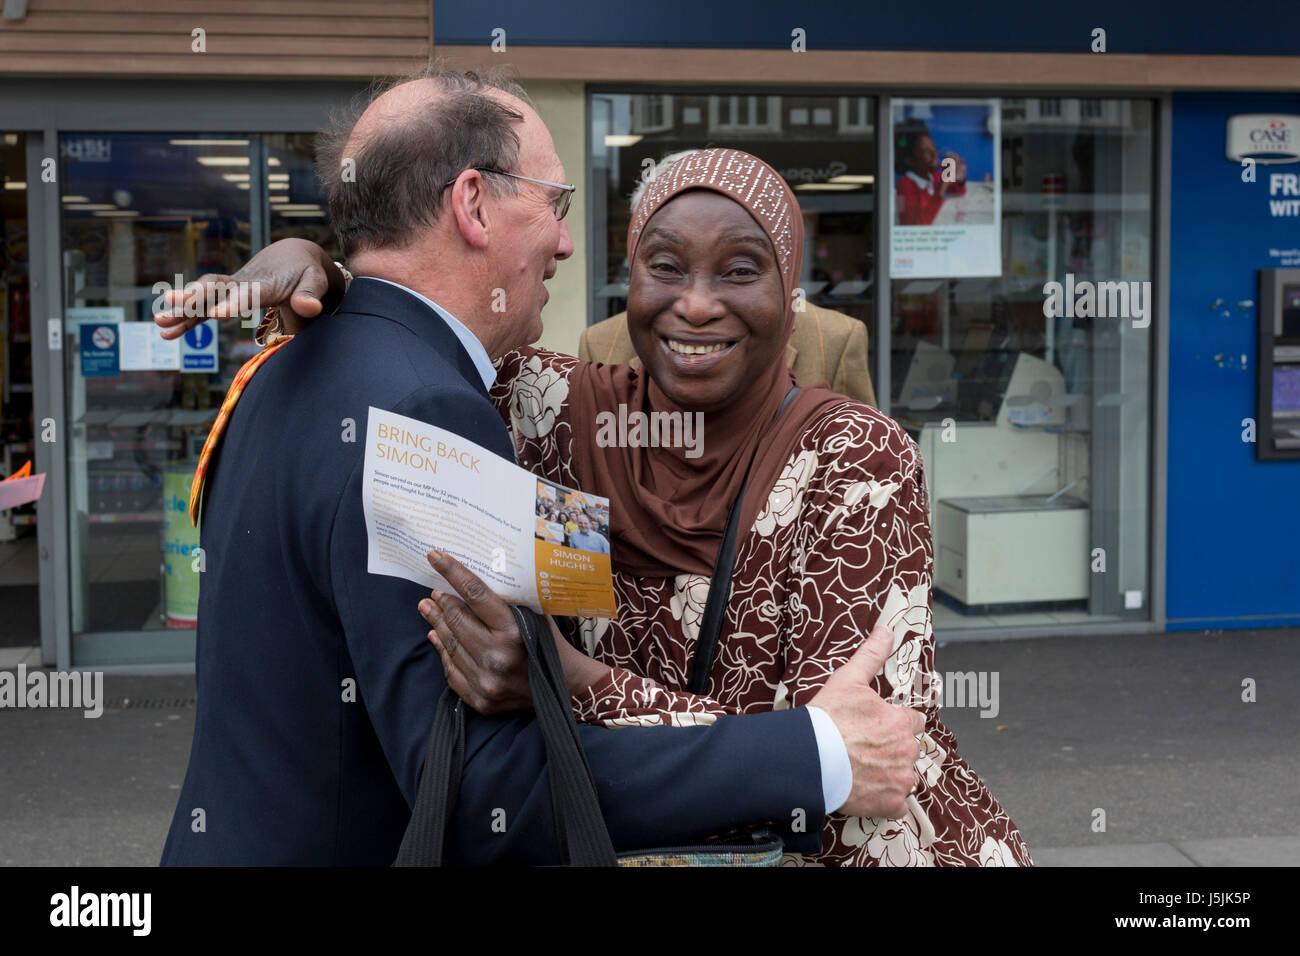 The former Liberal Democrat MP, Simon Hughes canvasses local support in the hope of regaining his seat in the forthcoming - Stock Image